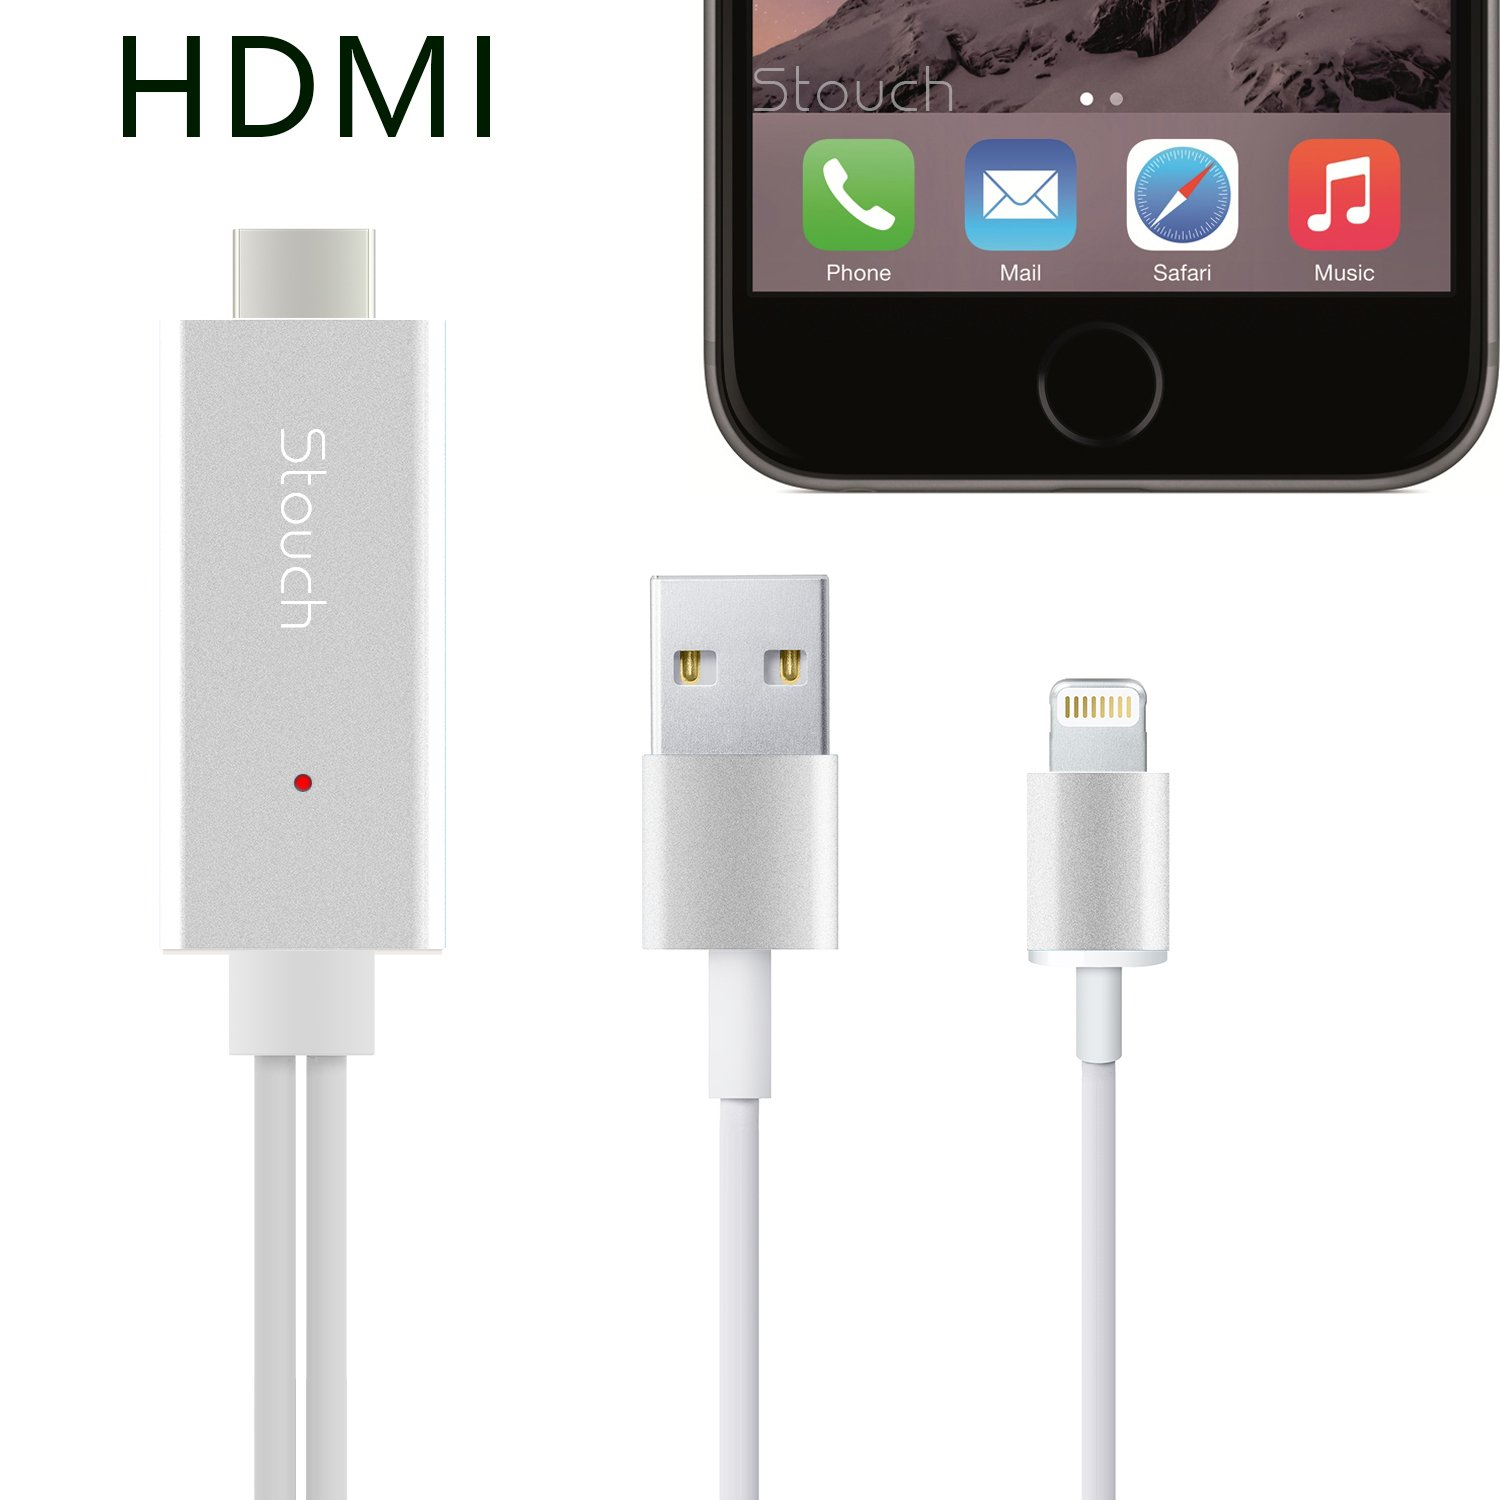 galleon stouch lightning mhl to hdmi cable 1080p hdtv adapter for iphone 5 5s 6 6s with. Black Bedroom Furniture Sets. Home Design Ideas